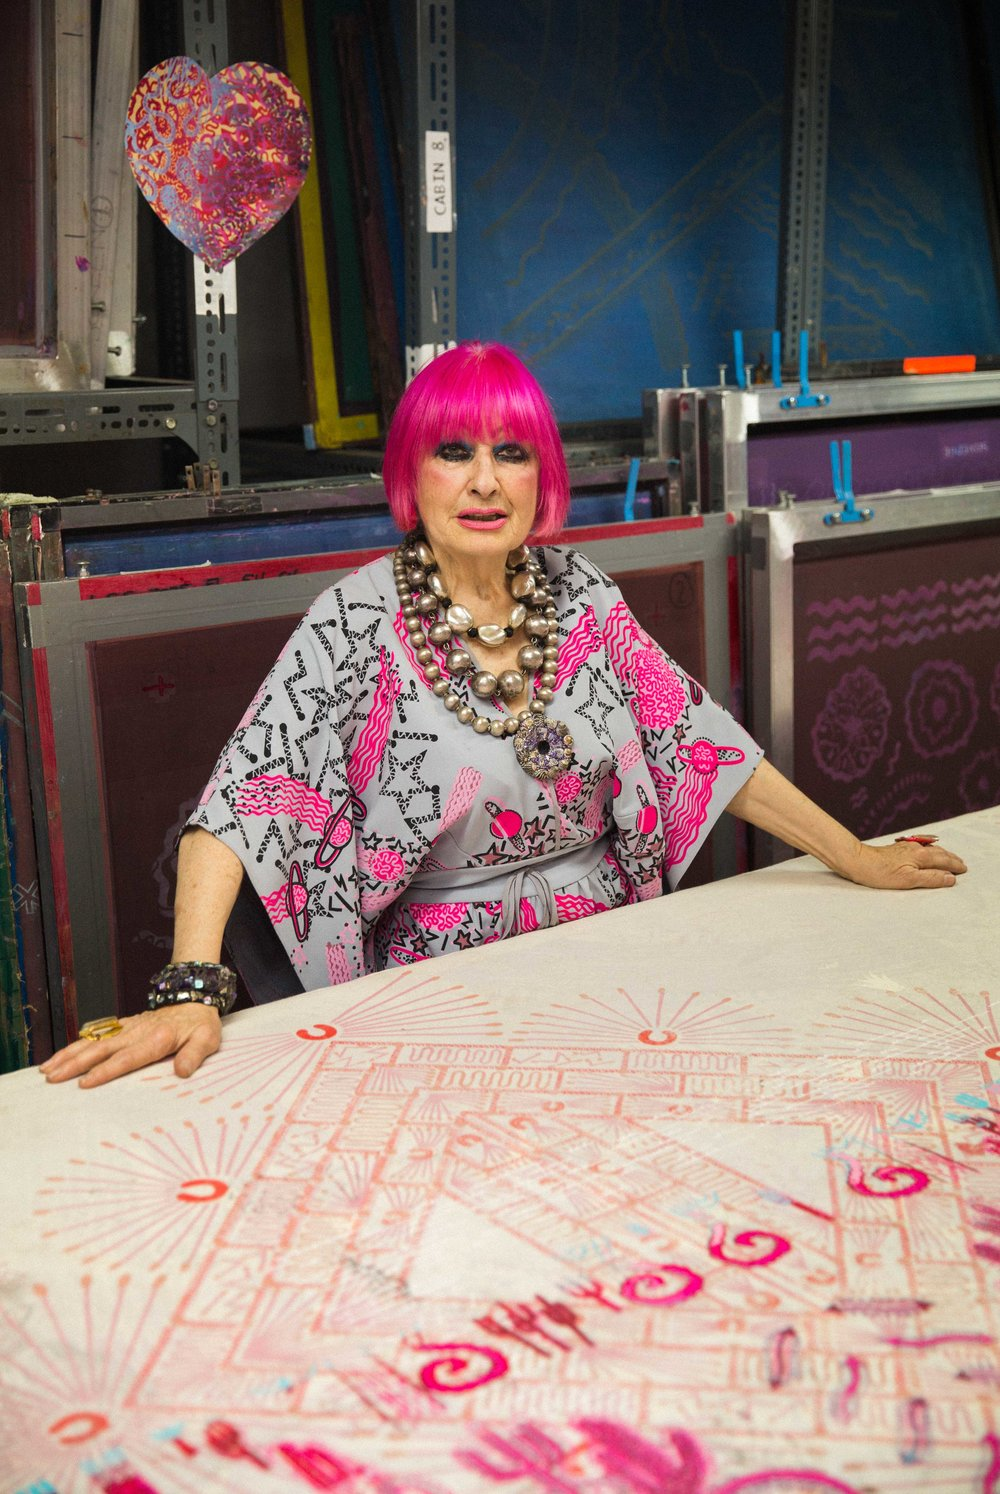 Zandra Rhodes x Marguerite - By Holly Whittaker11.jpg